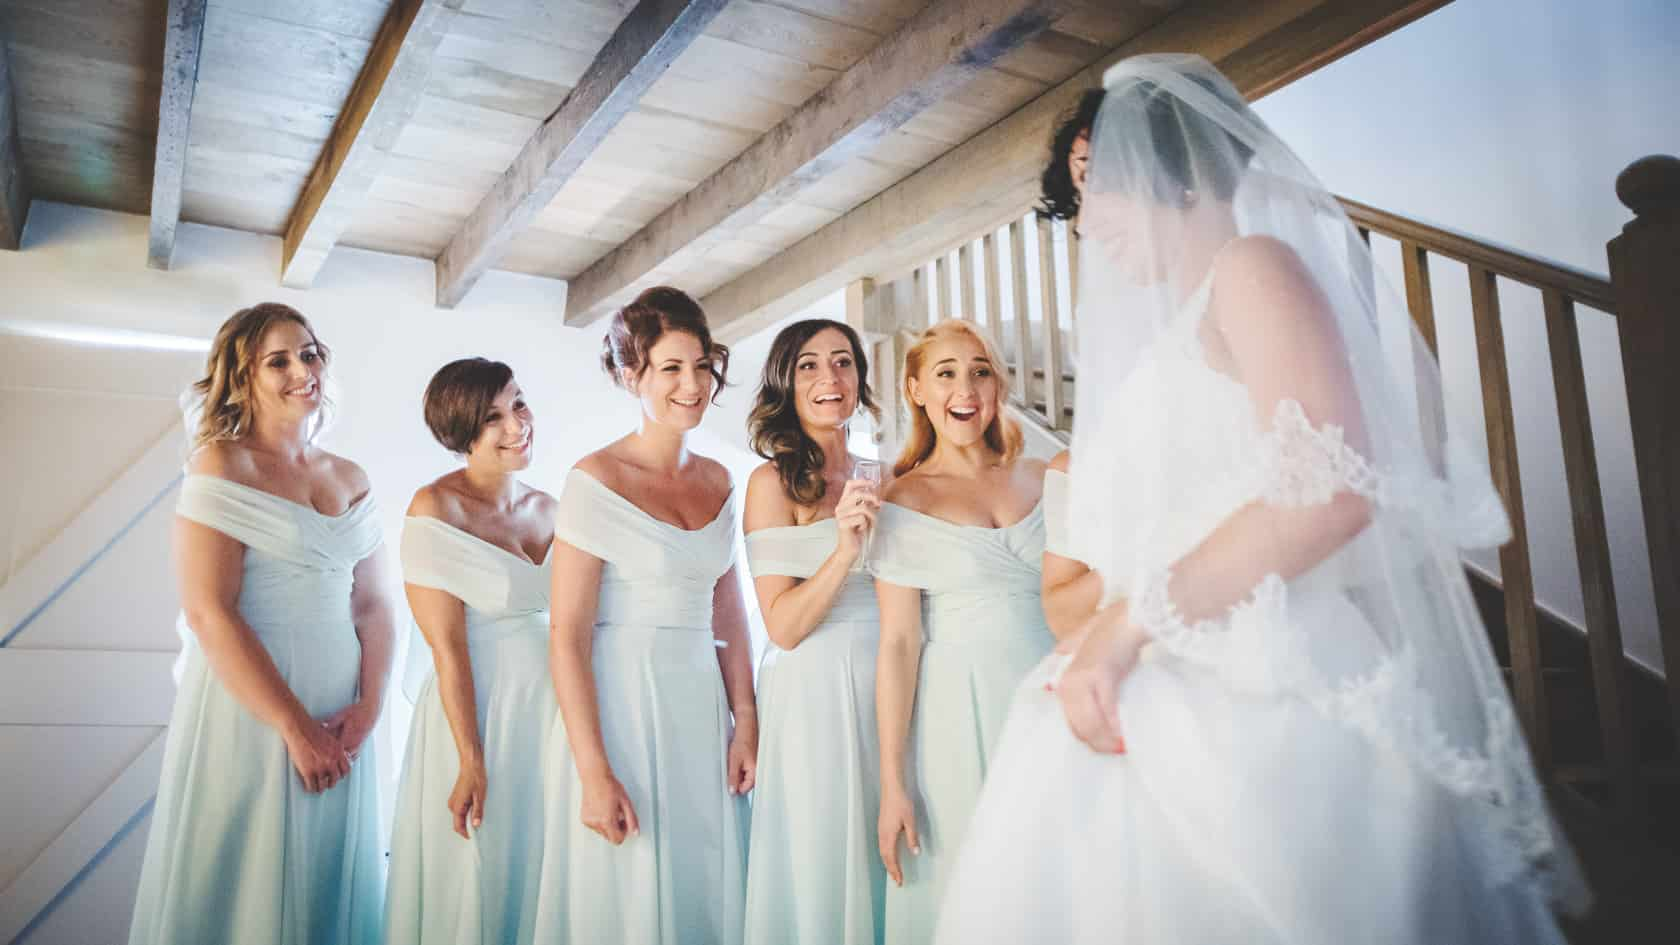 Documentary-Wedding-Photography-Justin-Bailey-Girls-See-The-Bride